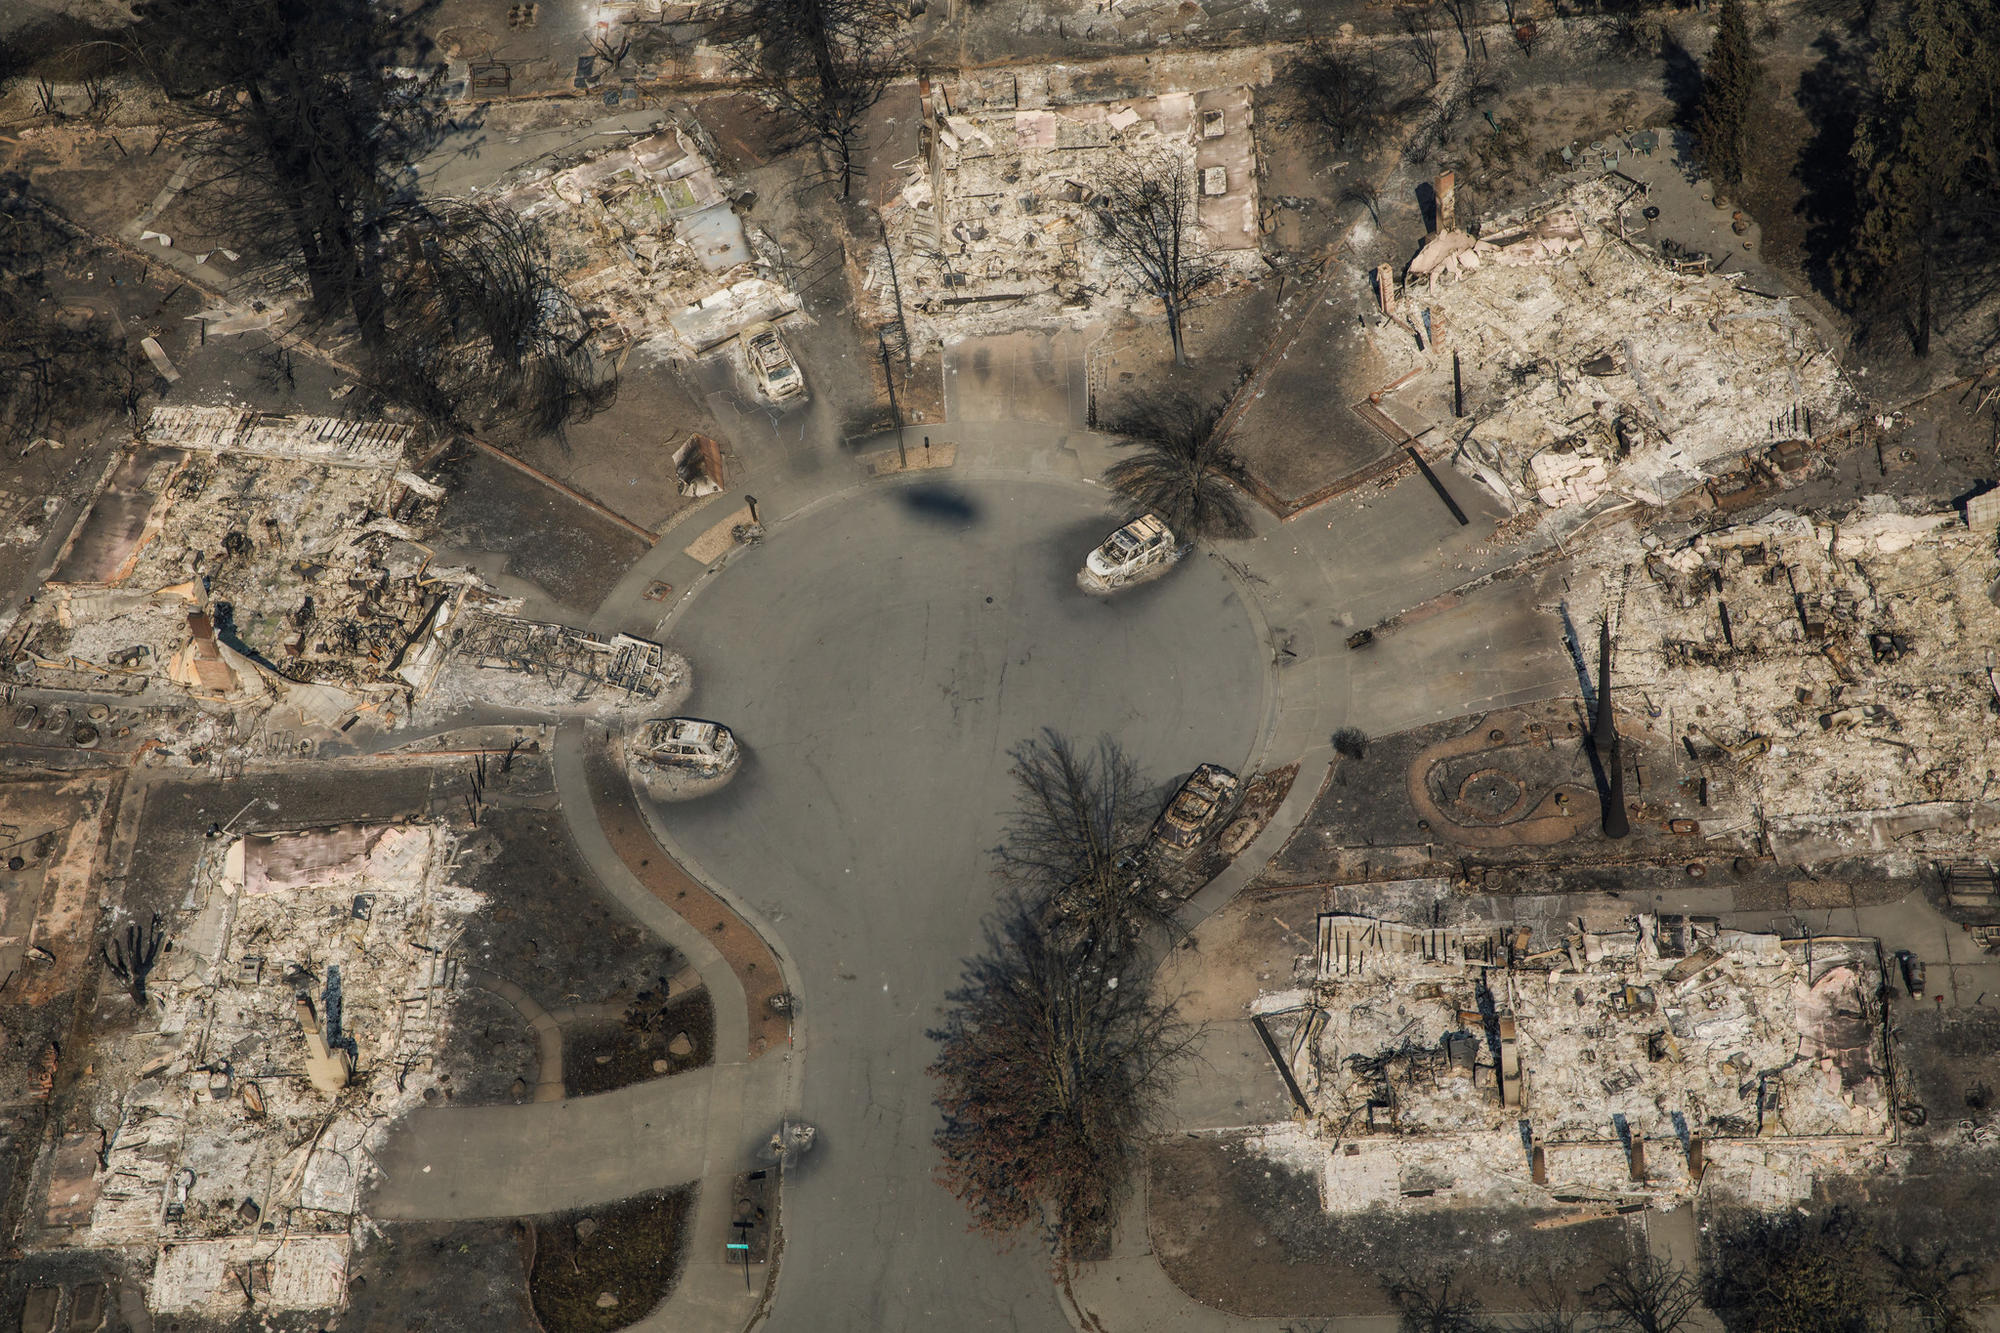 Another aerial view of the Coffey Park neighborhood destroyed by wildfire in Santa Rosa.